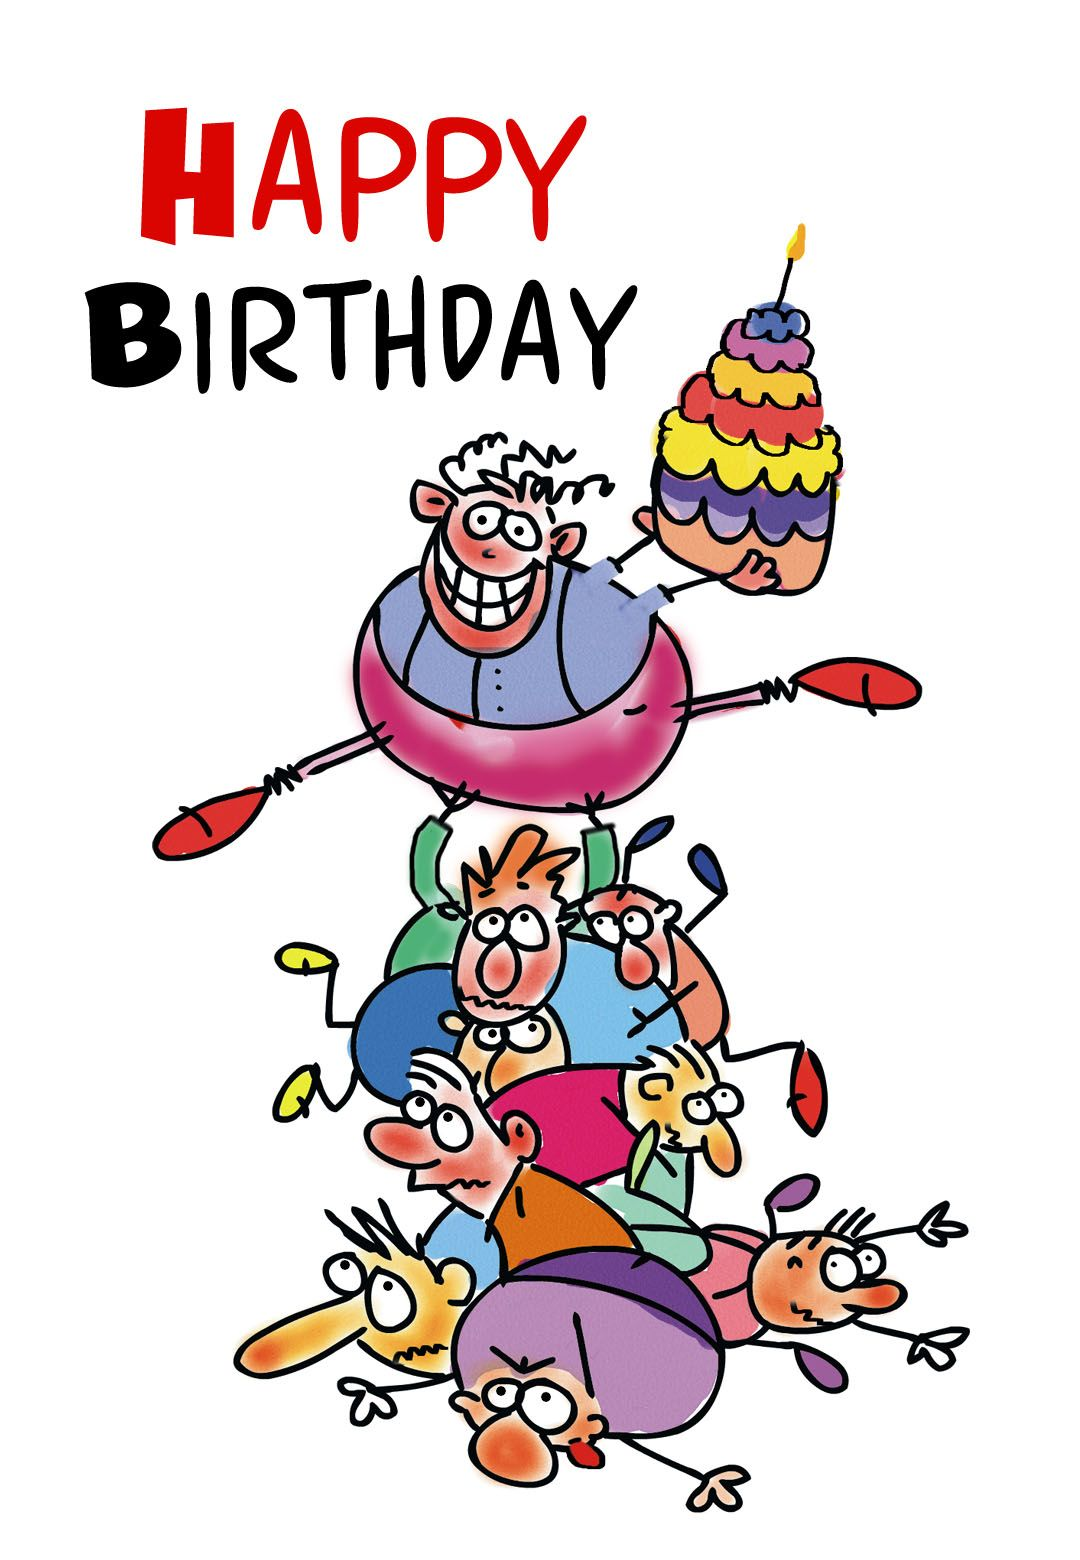 Free Printable Funny Birthday Greeting Card Gifts To Make